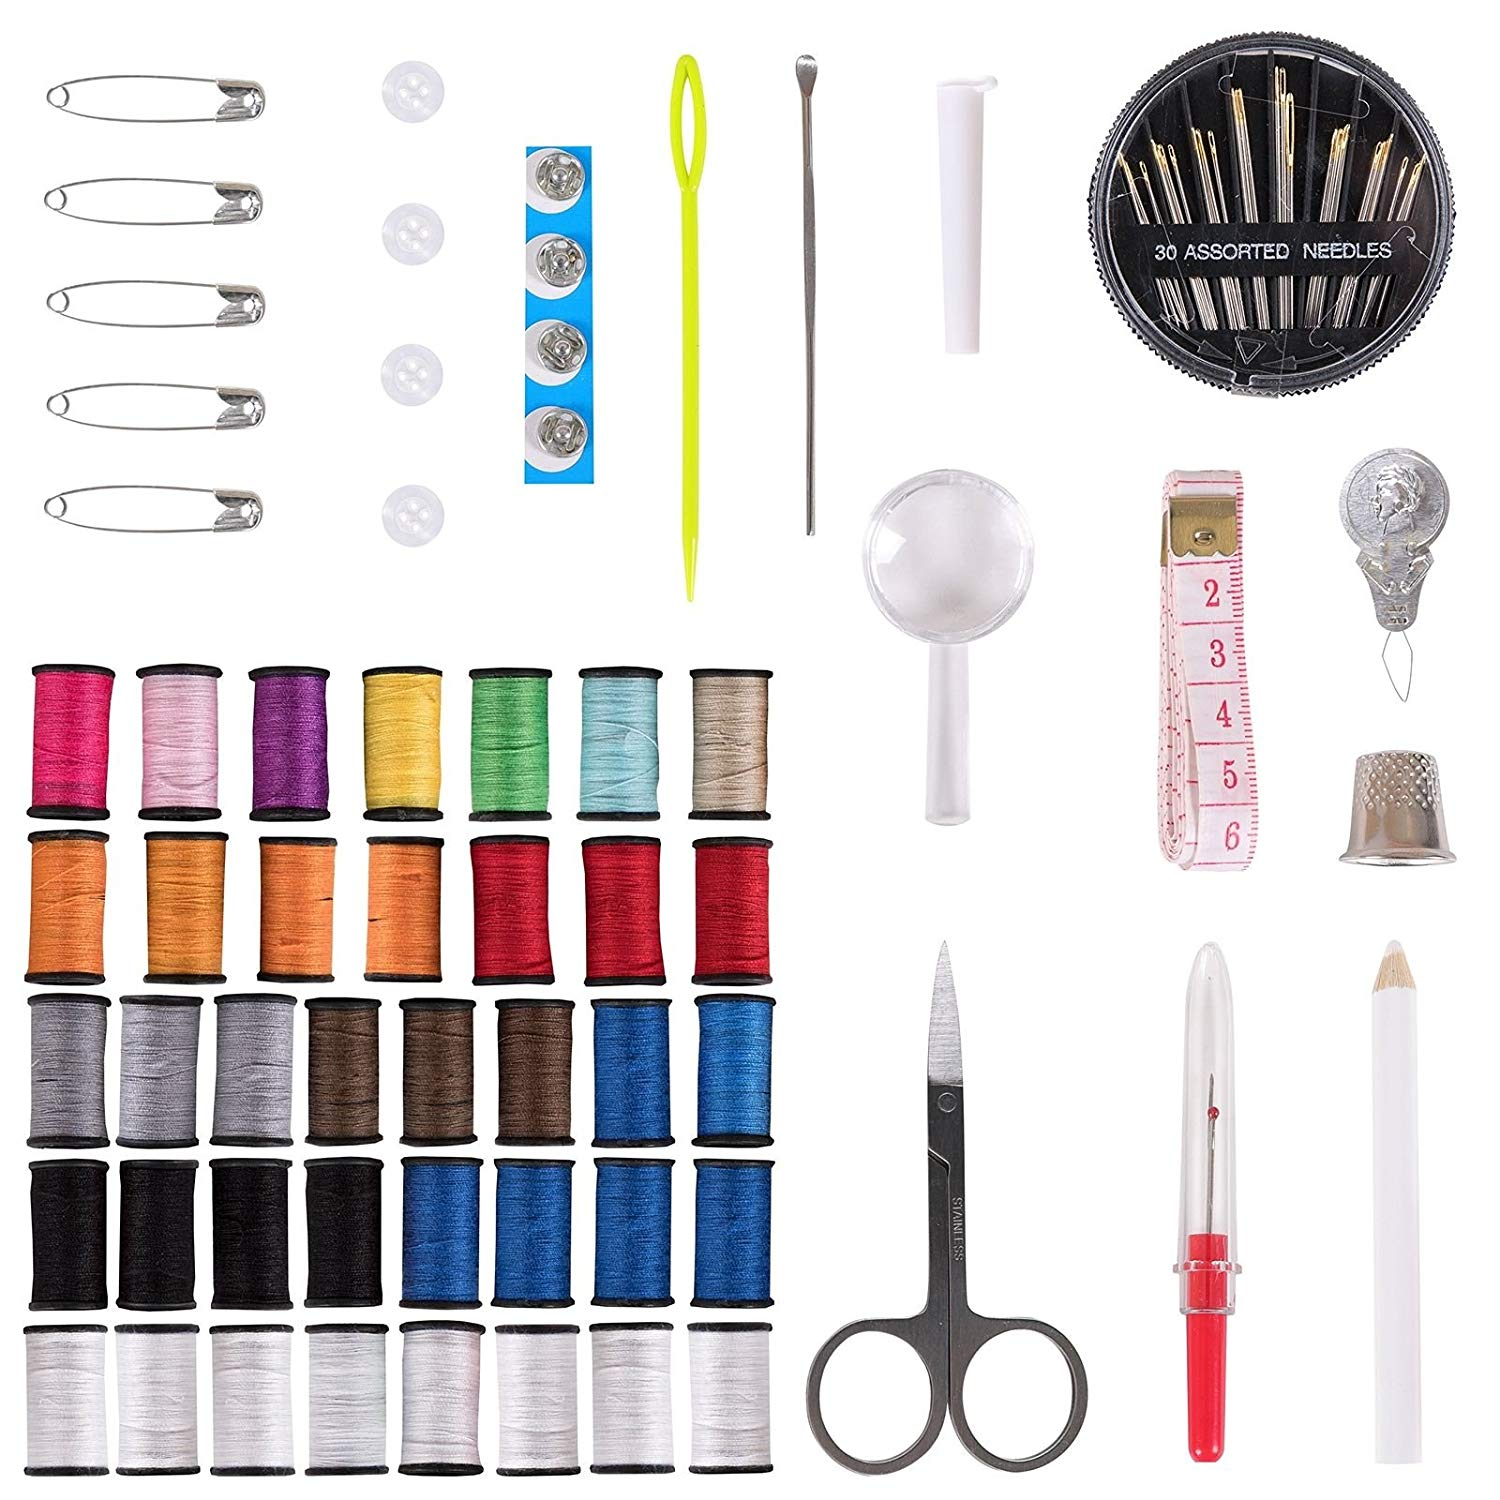 Generic nal Sewing Stitching Travel ional Se Thread Hand Professiona Professional Sewing Kit ead Hand S Craft Home Craft Set Home Home Craft